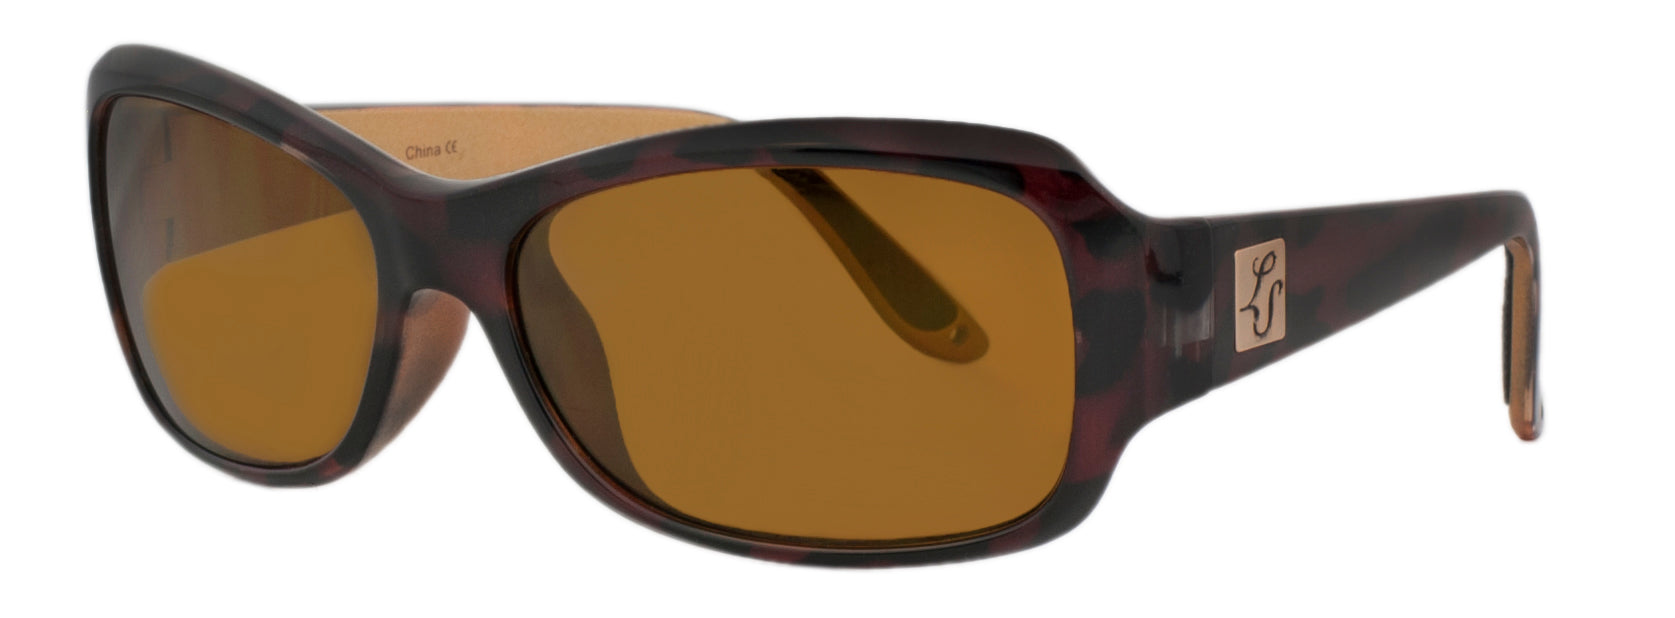 Meadow Tortoise Gold